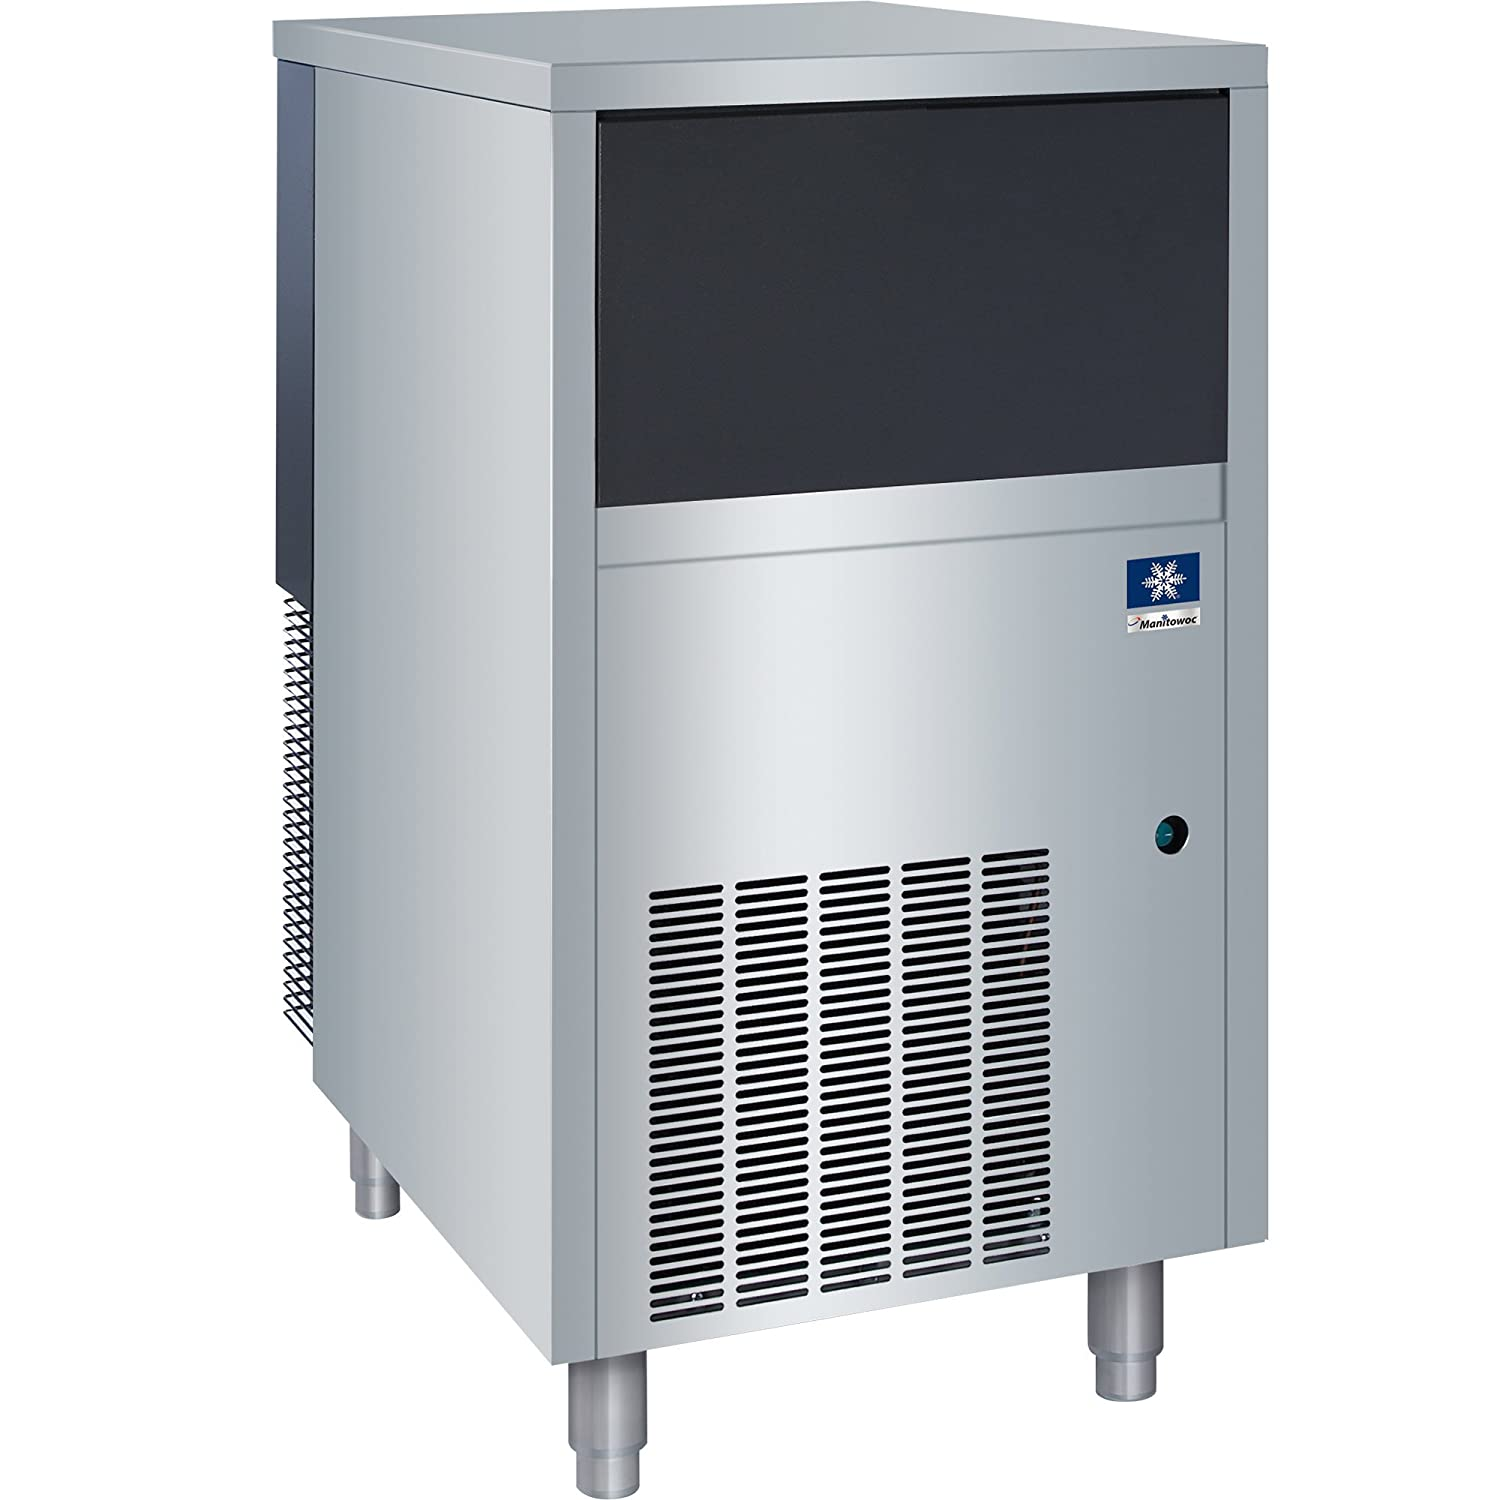 115V//60 Hz//1 Manitowoc RNS0244A-161 RNS-0244A Air Cooled Undercounter Nugget Ice Machine